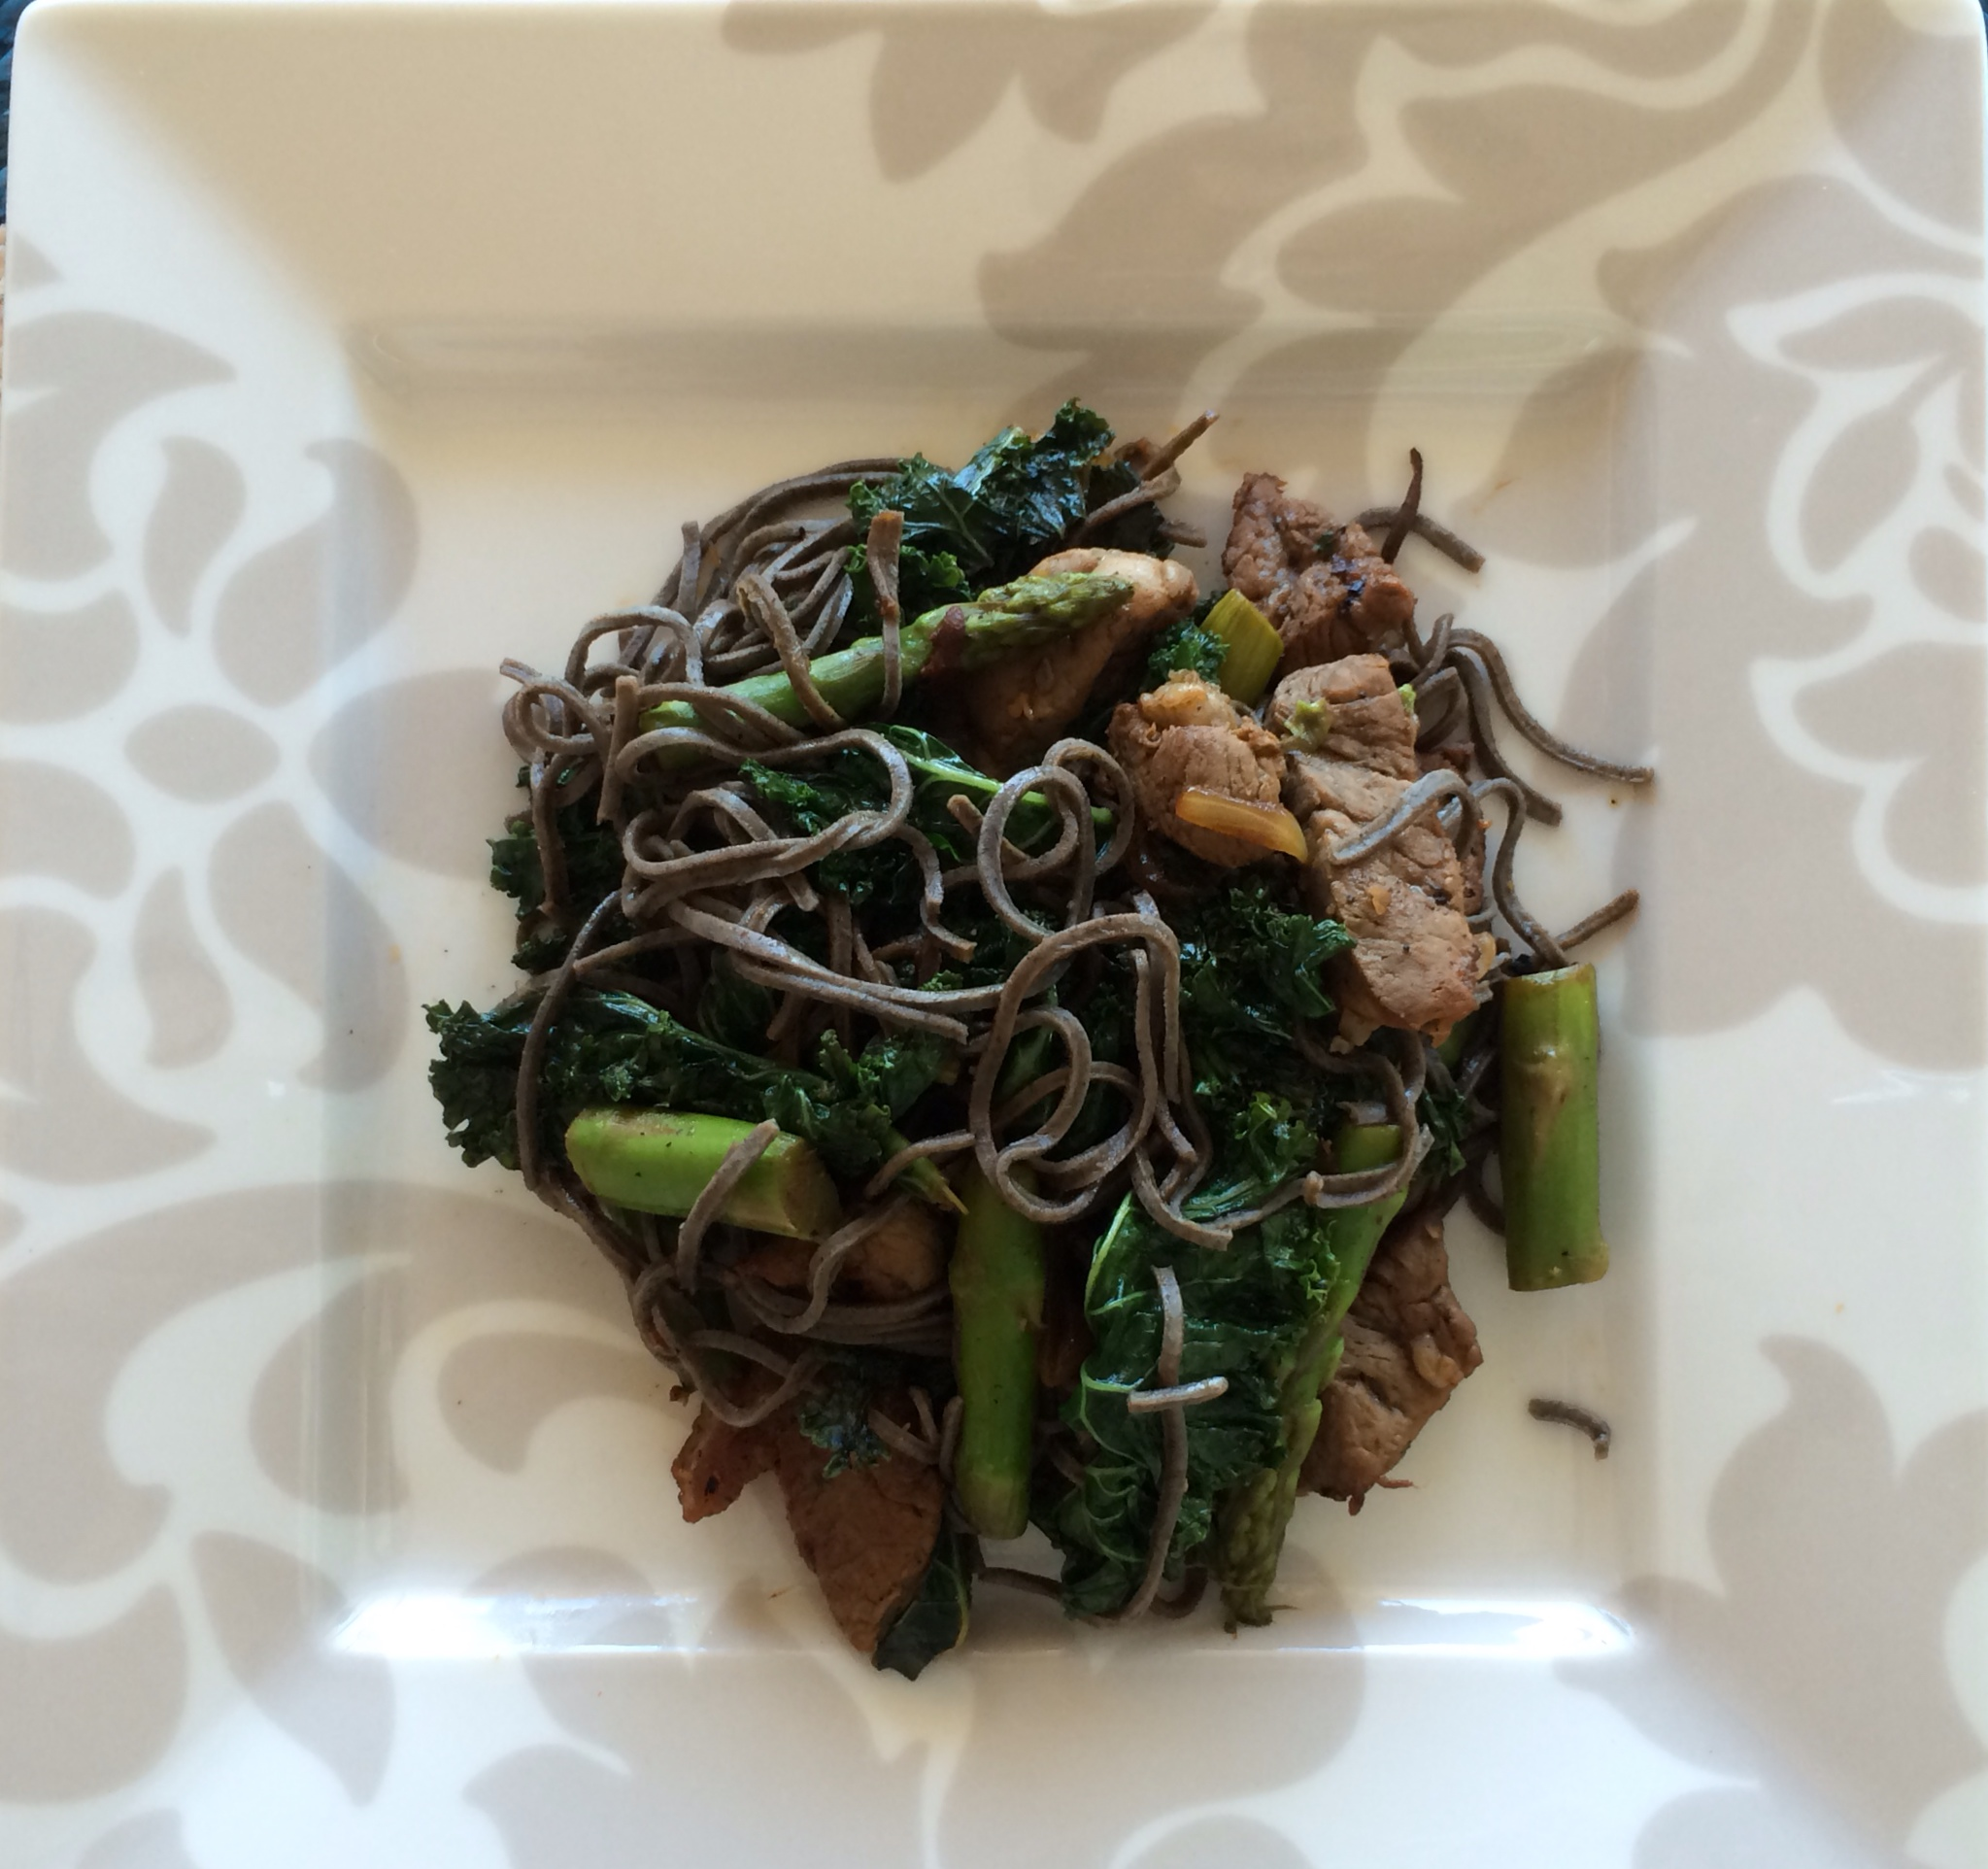 When It Comes To Cooking Stir Fry Is A Firm Favorite In My Book Like Sauteeing Stir Frying Involves Cooking Evenly Sized Pieces Of Meat Or Vegetables On